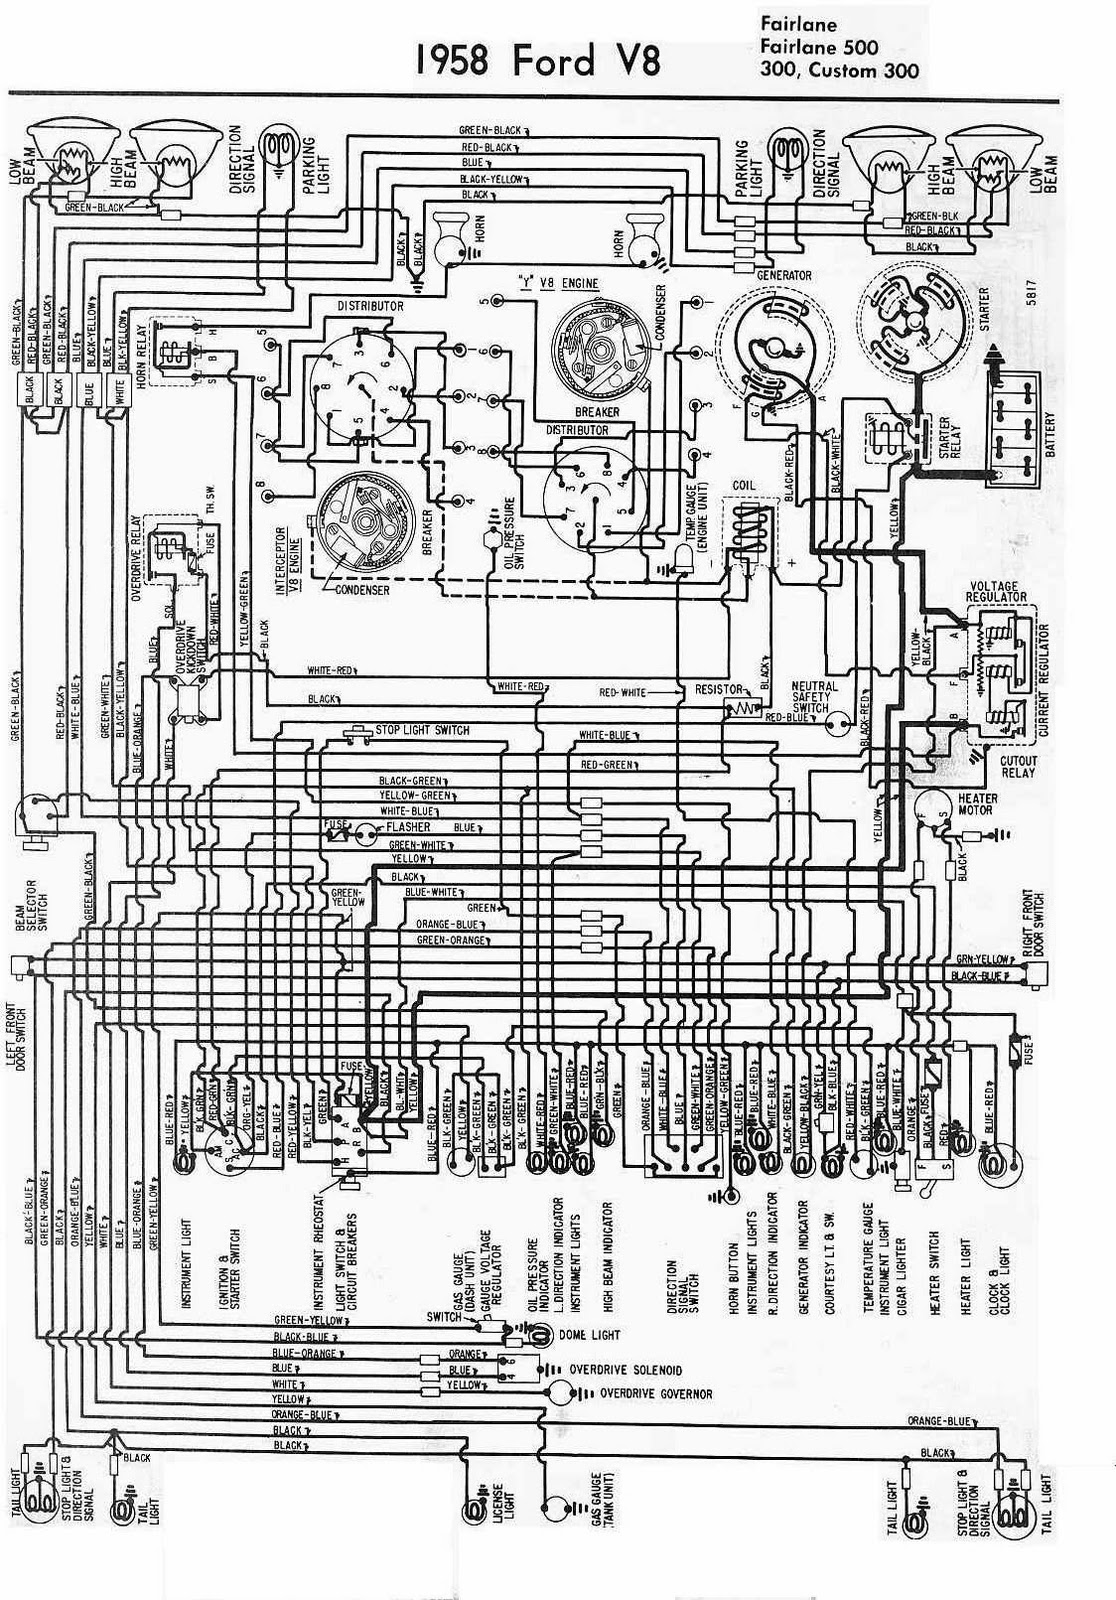 electrical wiring diagram for 1958 ford v8 all about wiring diagrams rh diagramonwiring blogspot com 56 Ford Headlight Switch Wiring Diagram 1951 1954 Ford Headlight Switch Diagram